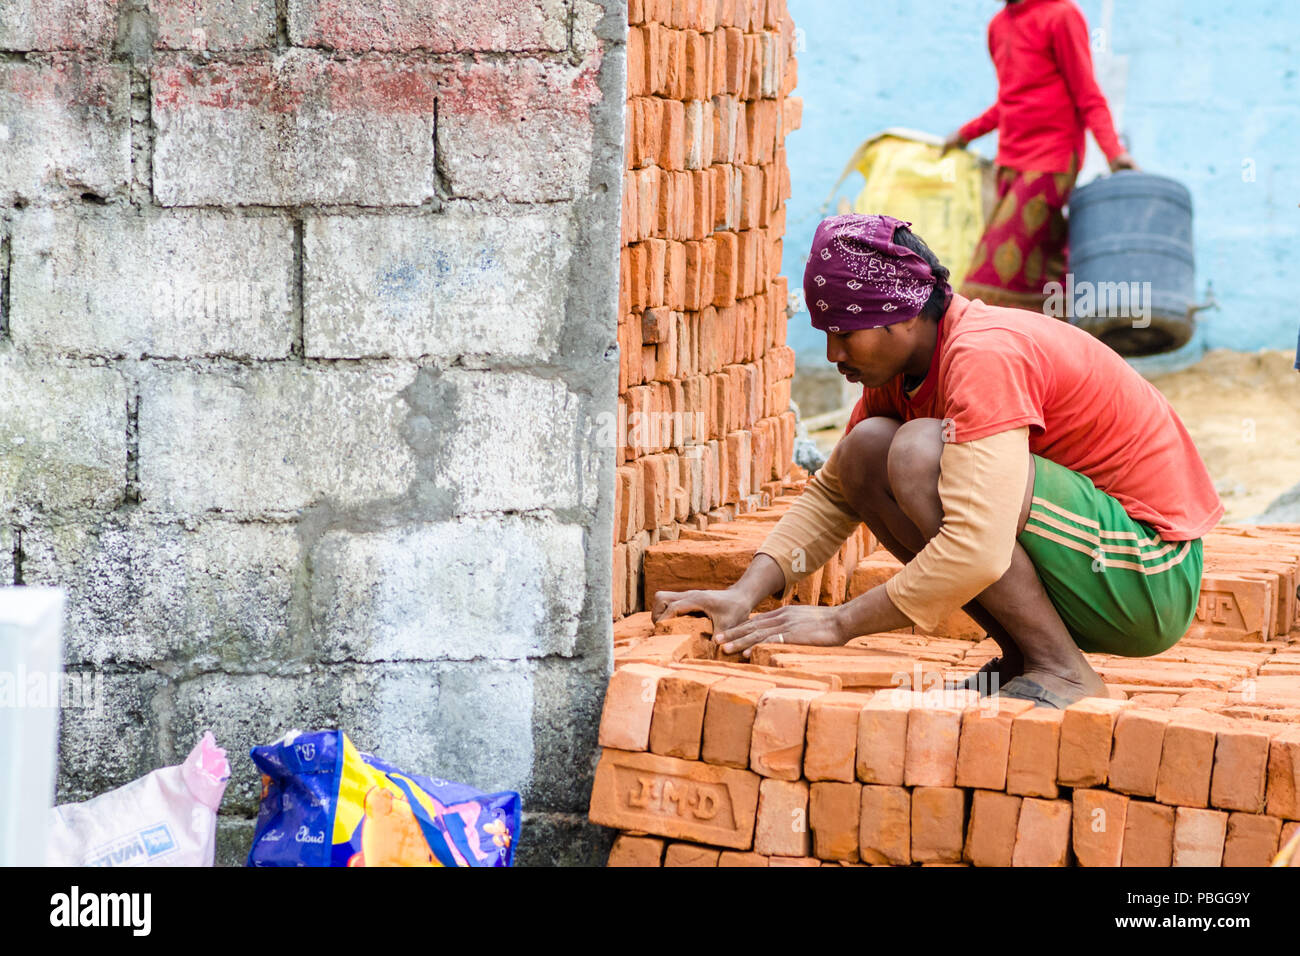 Worker piling up bricks in Pokhara, Nepal - Stock Image